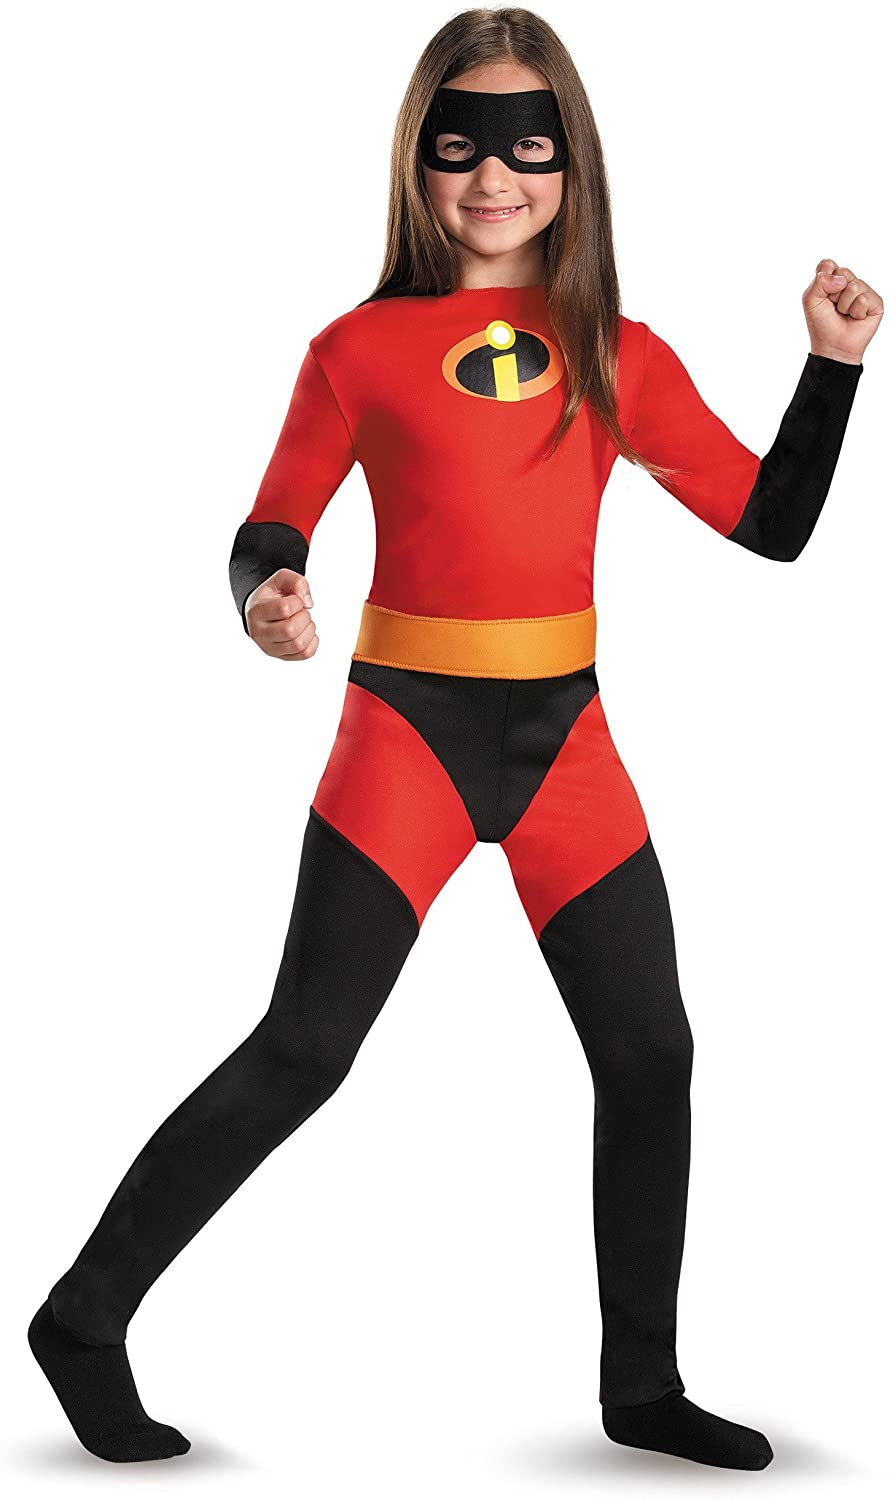 Disguise Kids Violet Incredibles Costume Medium (Sizes 7-8)